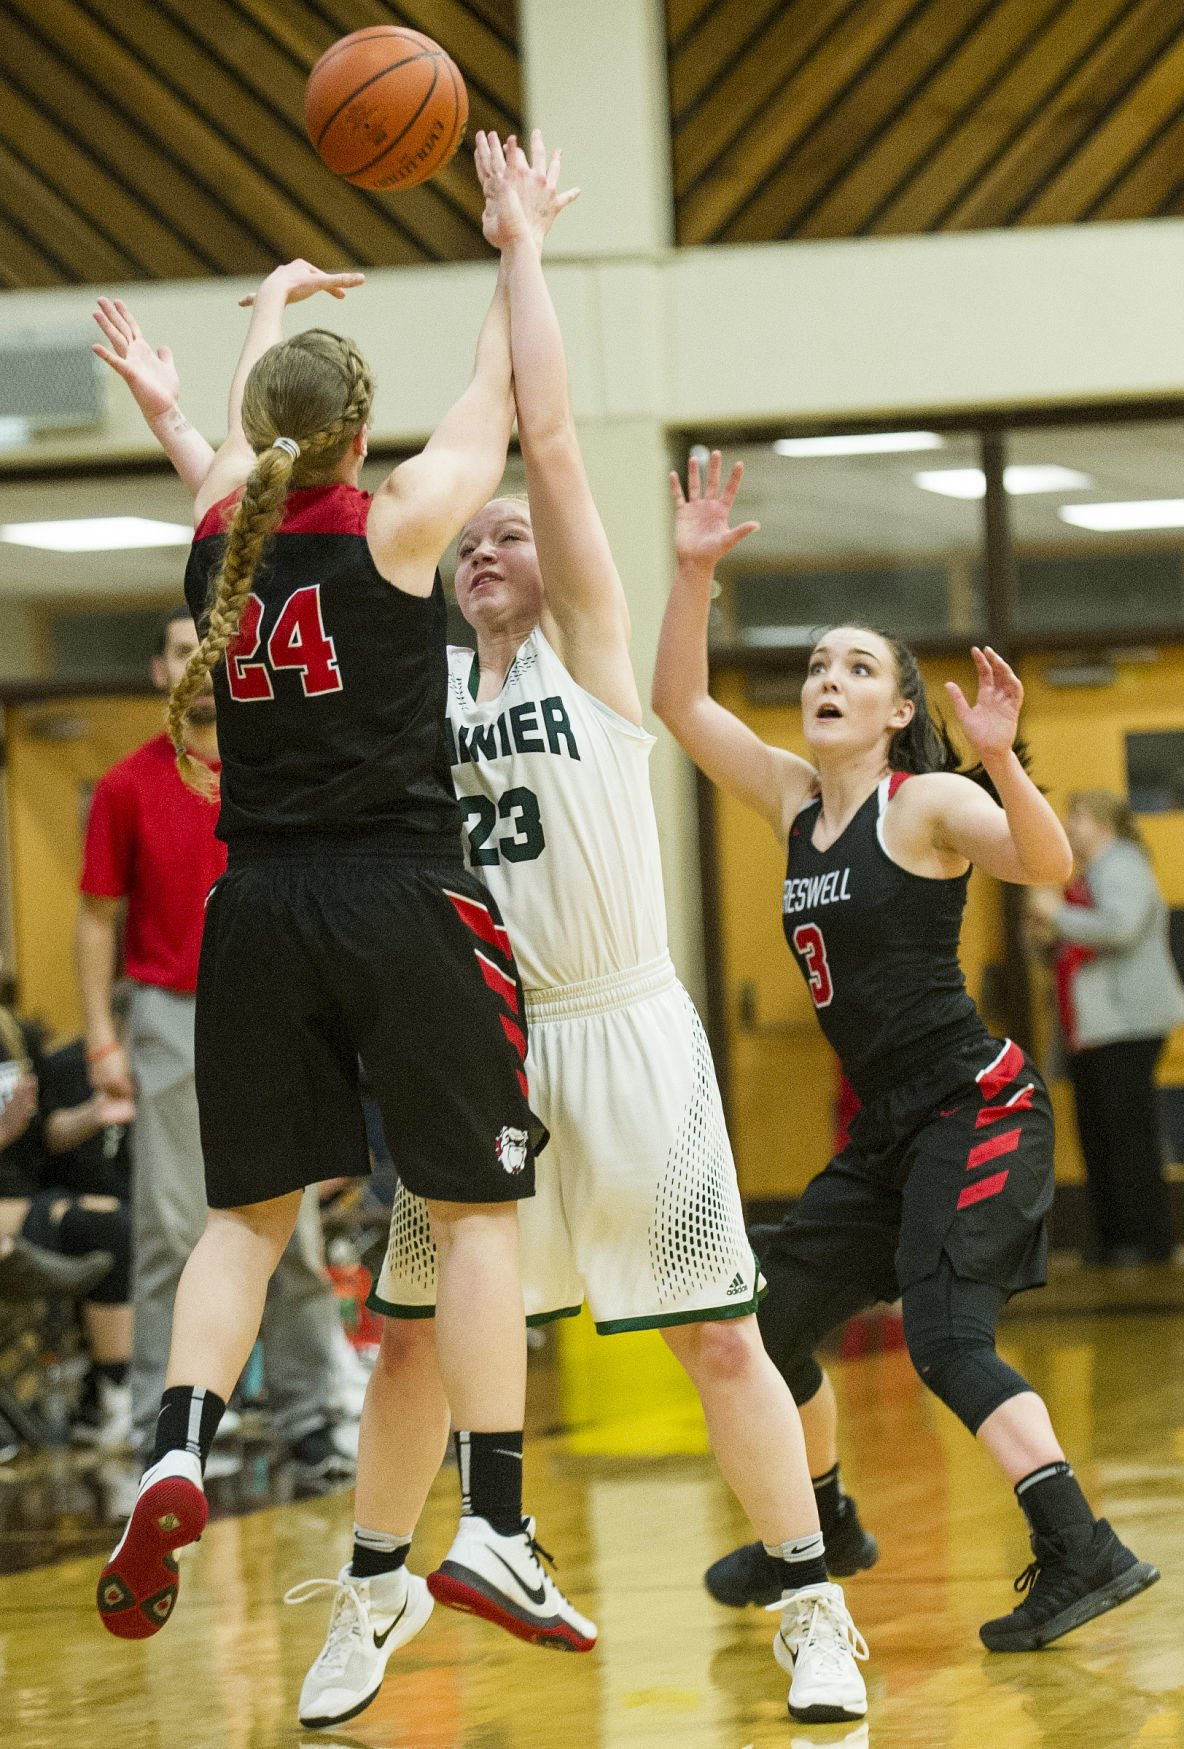 Rainier Girls Vs.Creswell